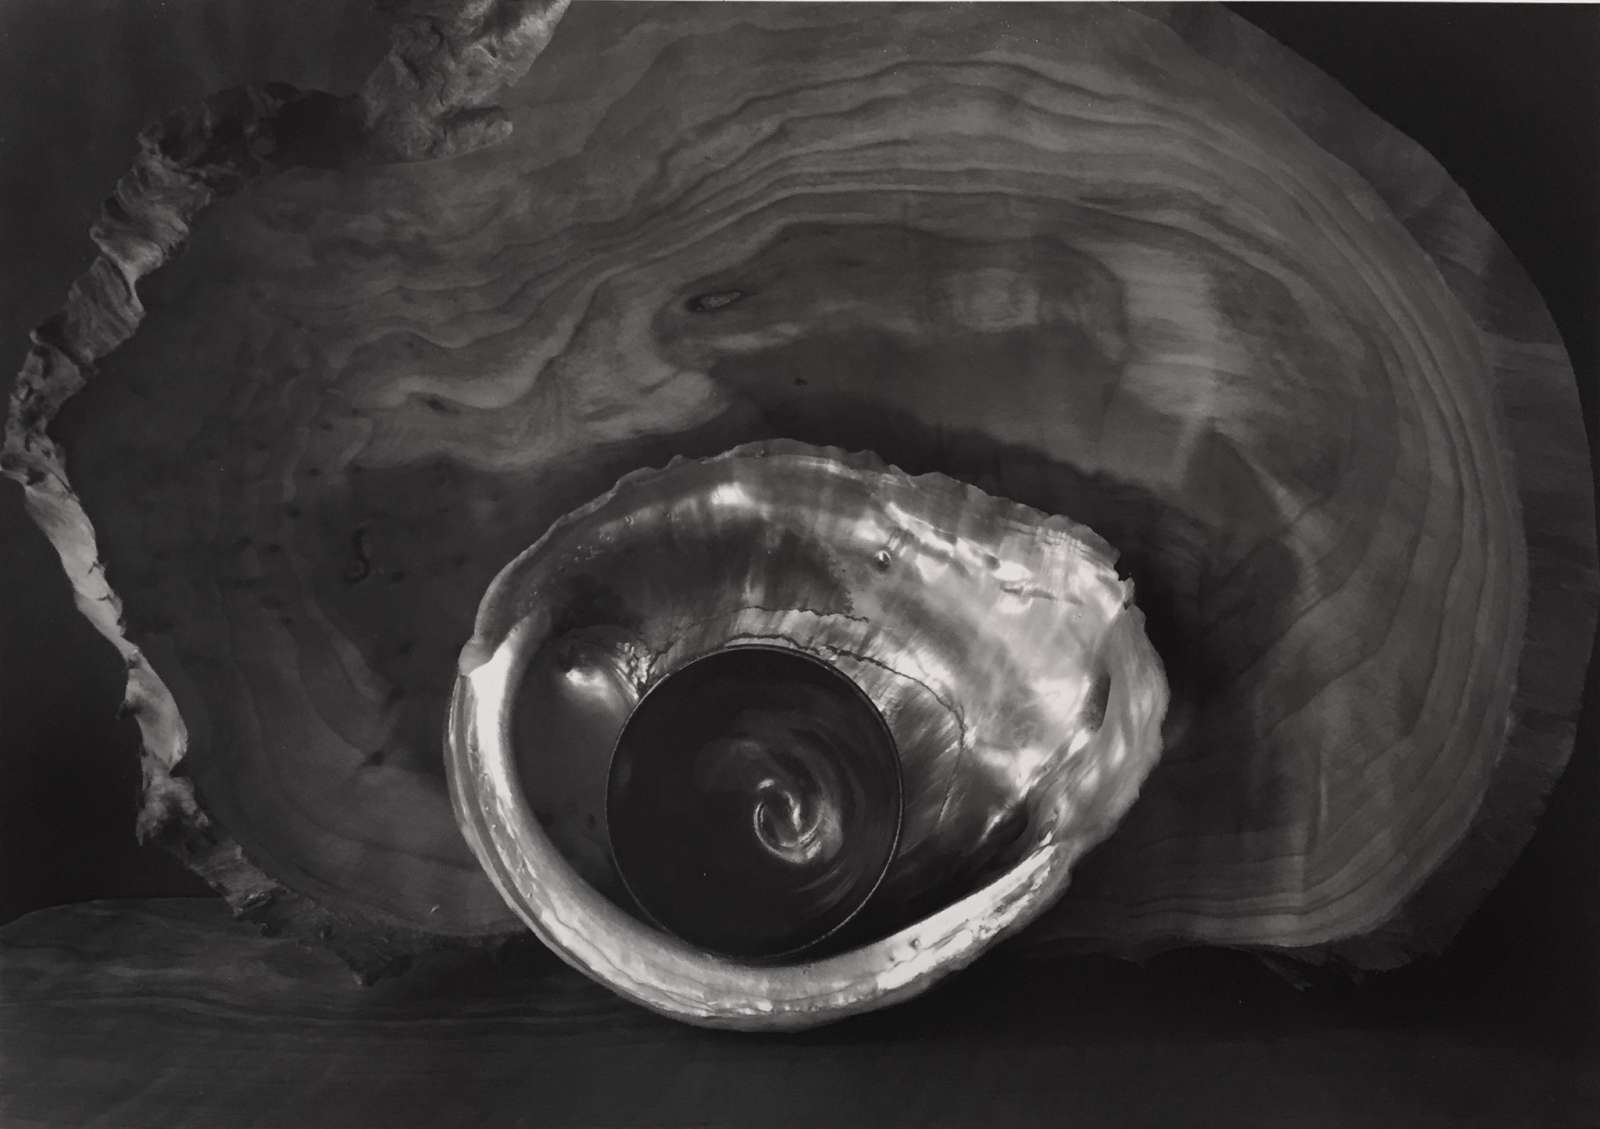 Paul Caponigro, Tea Bowl and Shell, 2002